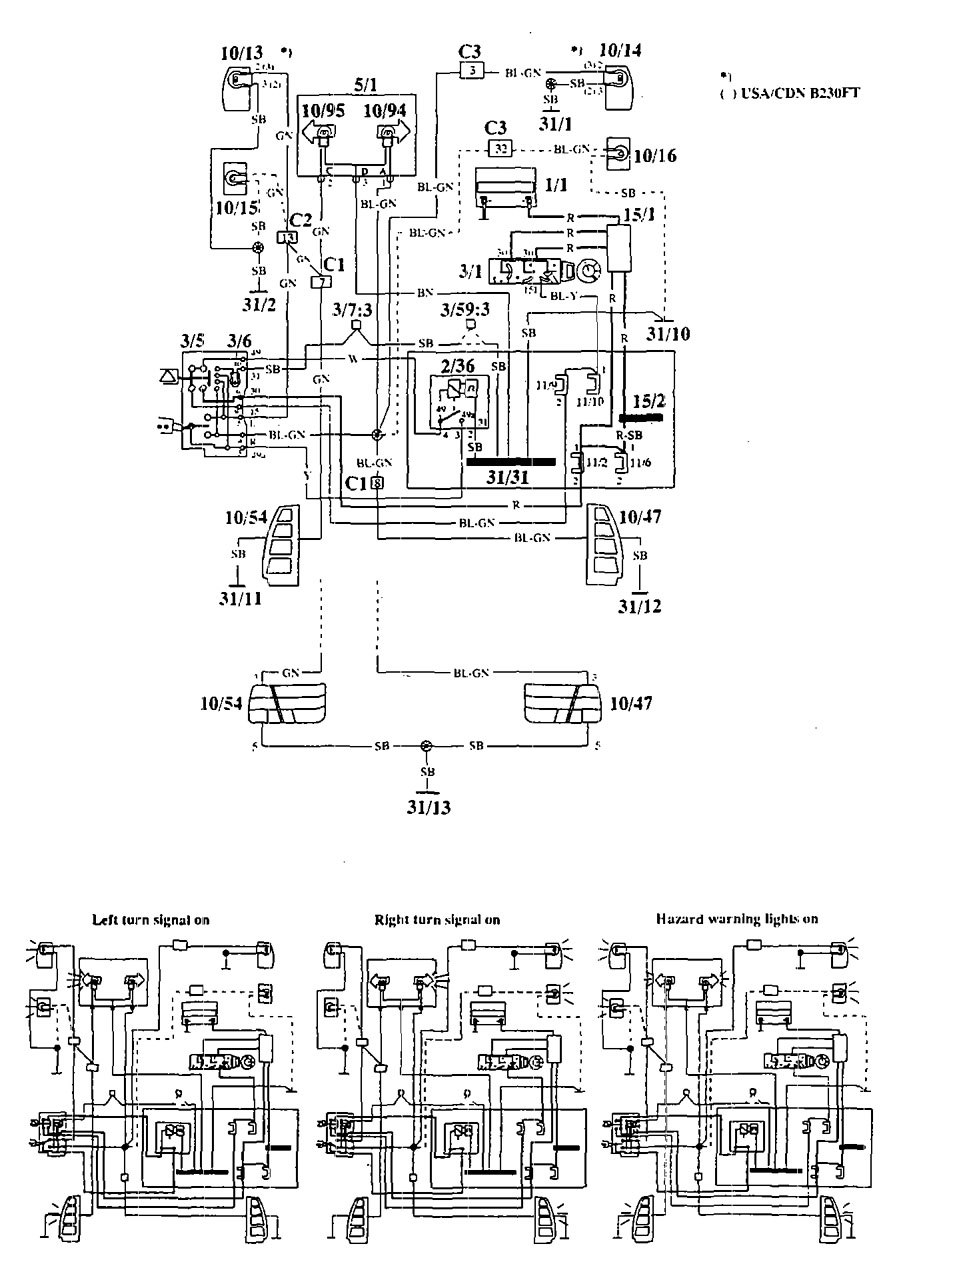 Volvo 940 Wiring Diagram Schematics 630 1994 Diagrams Hazard Lamp Carknowledge Subaru Baja